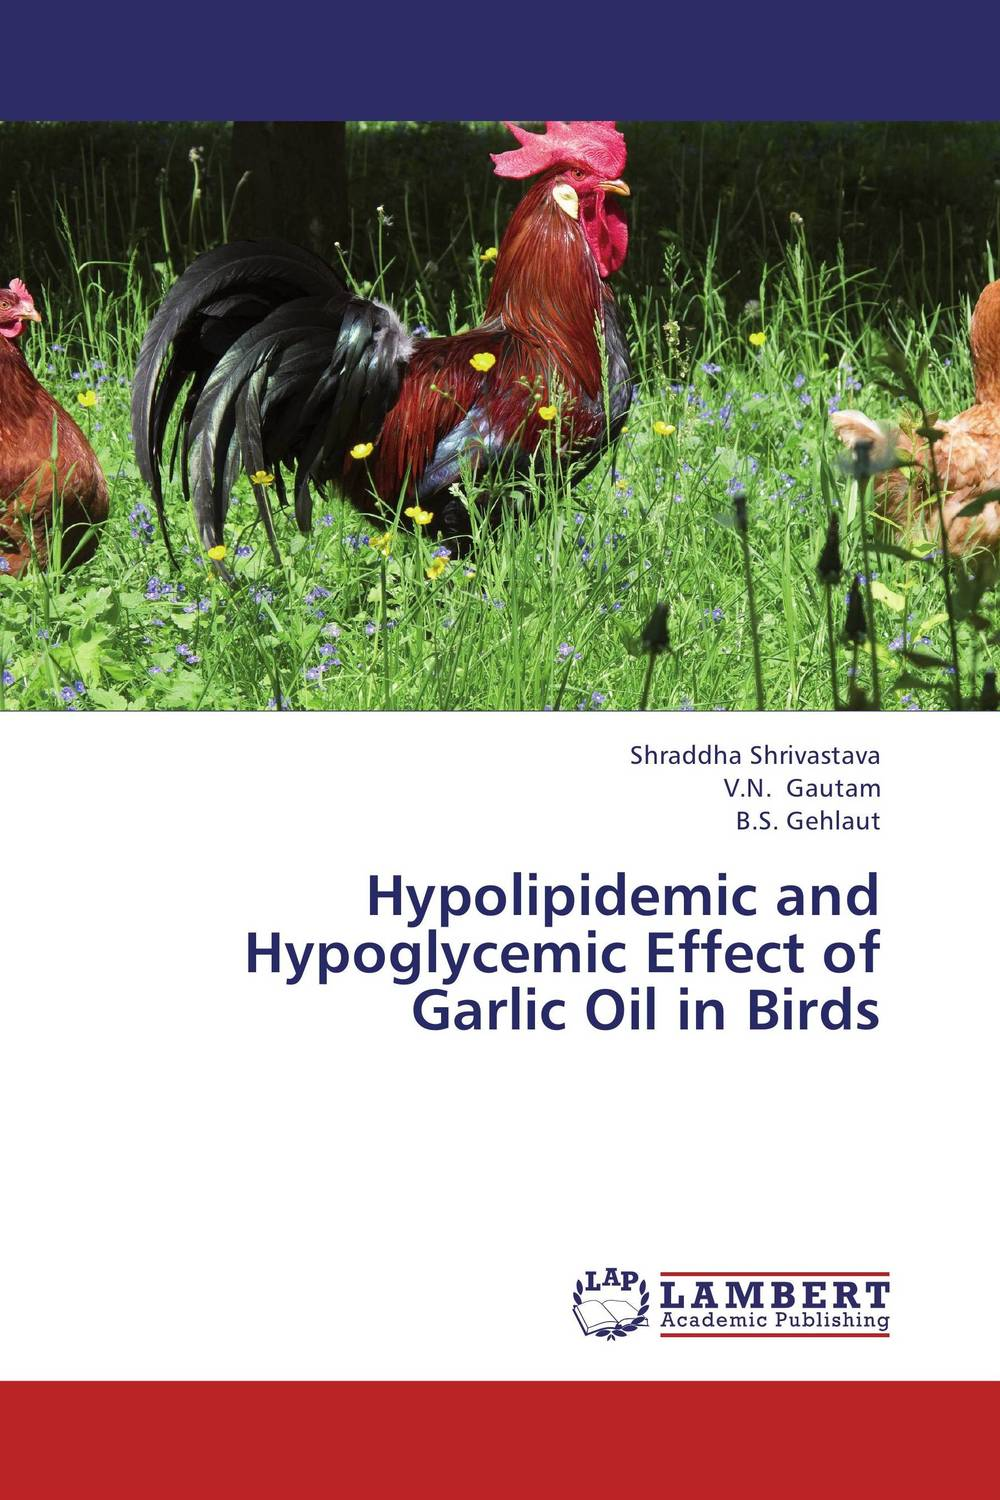 Hypolipidemic and Hypoglycemic Effect of Garlic Oil in Birds 25 pcs test strips with 25pcs needles of on call blood lipid analyzer for hyperlipidemia and high cholesterol disease test tools